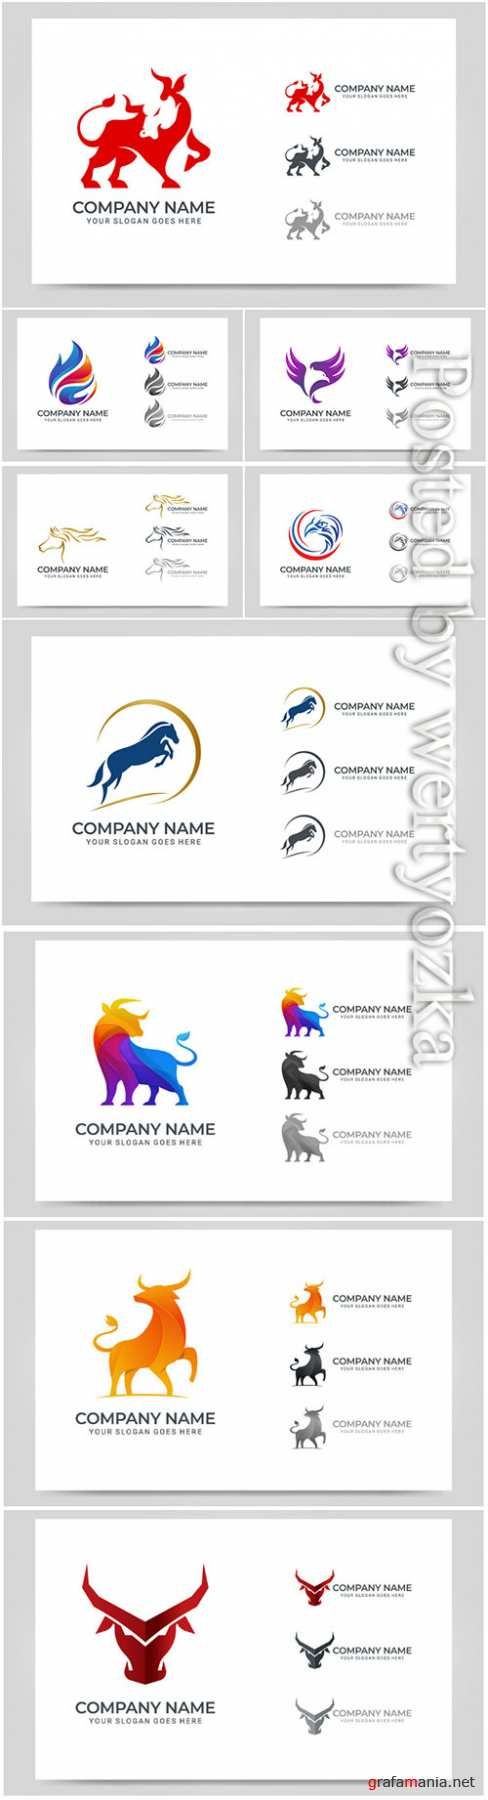 Modern abstract logo design